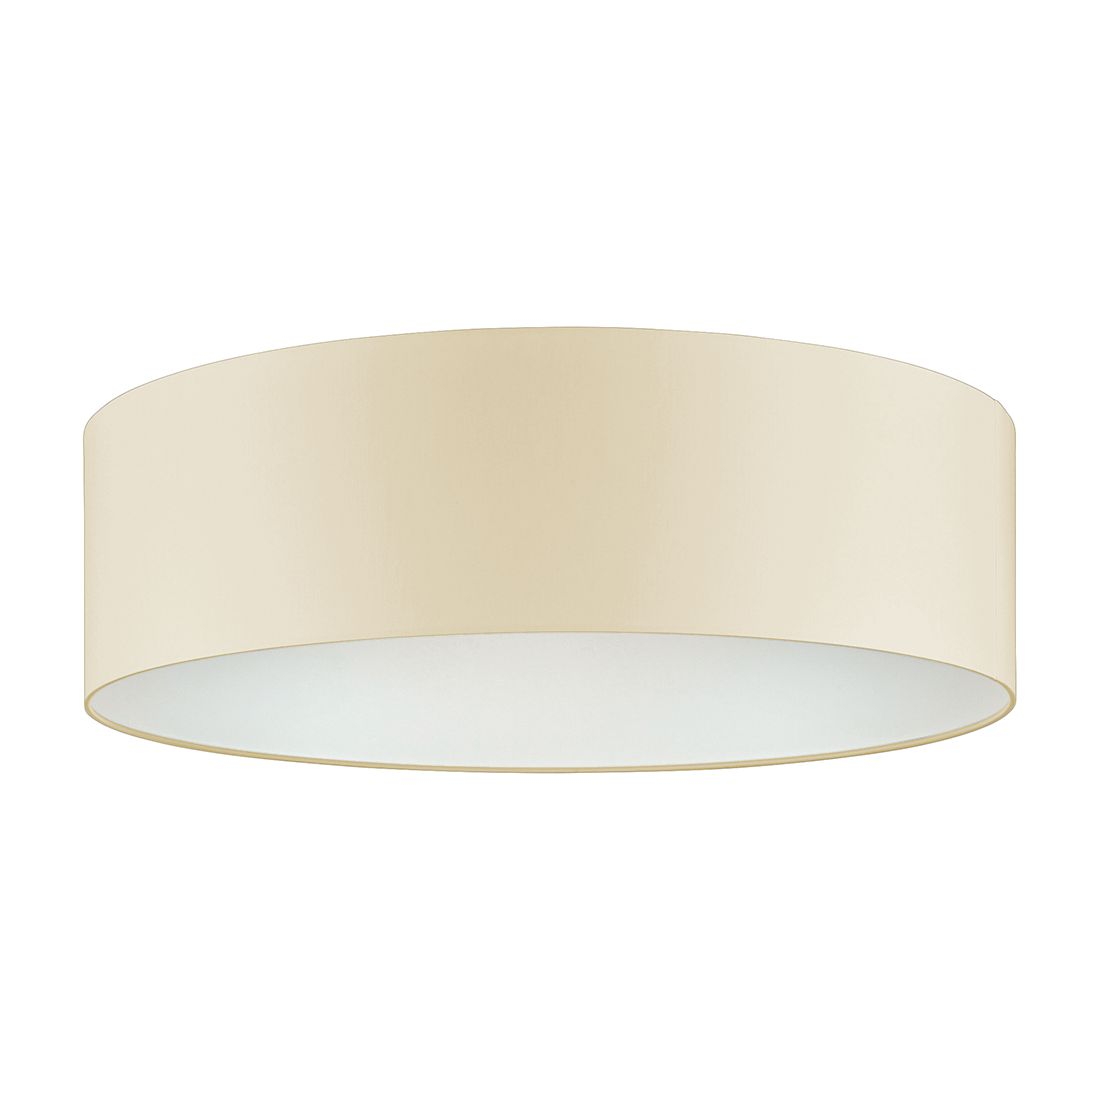 deckenleuchte 3 flg beige 60 cm rund shine loft fischer. Black Bedroom Furniture Sets. Home Design Ideas